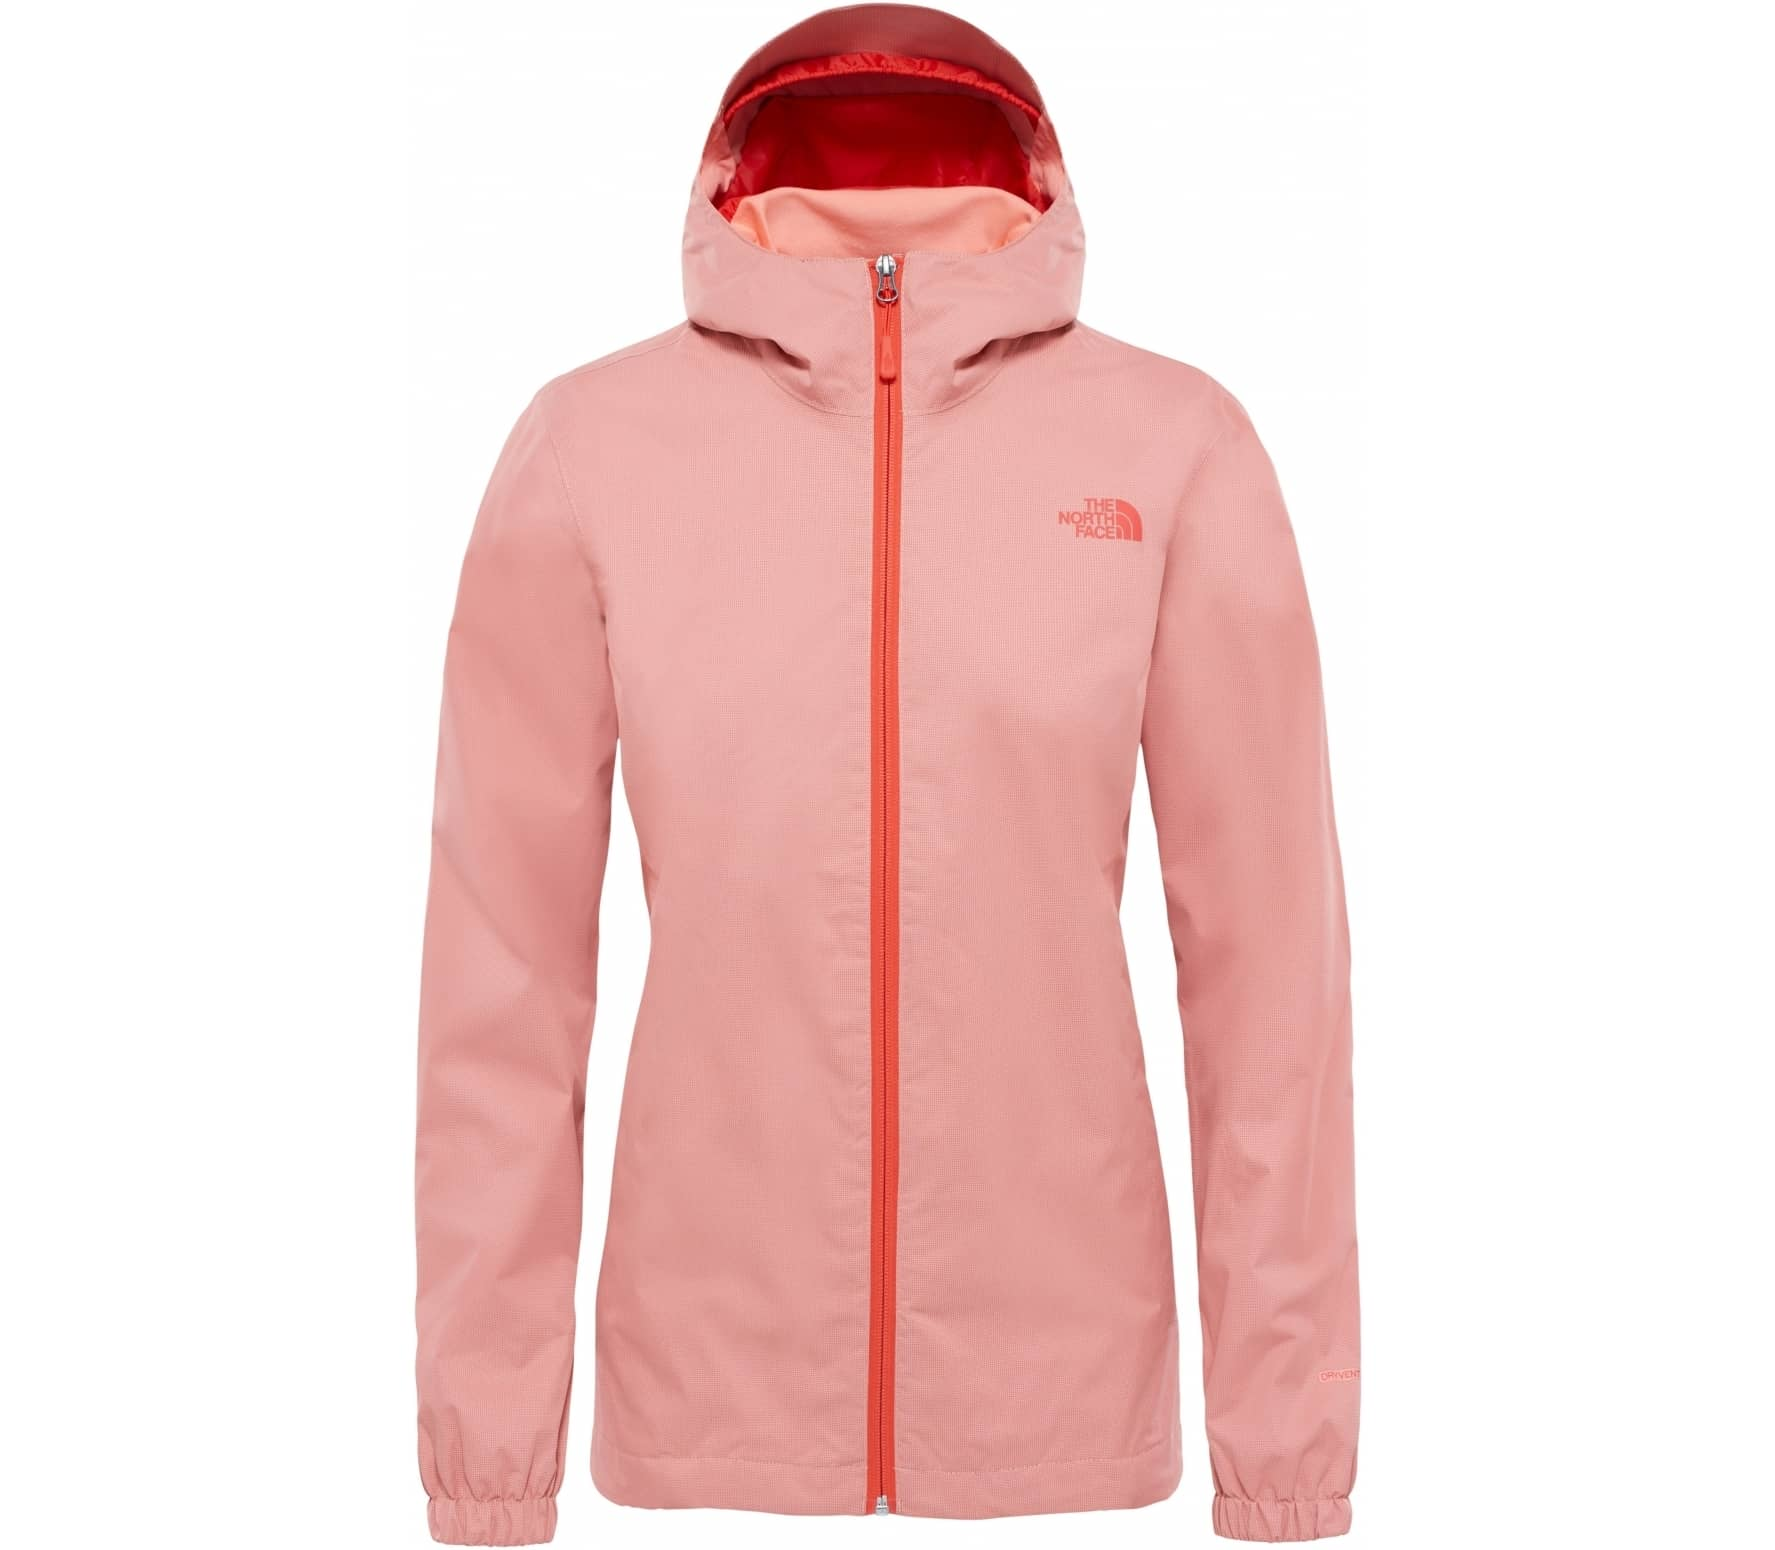 26f9843613 The North Face - Quest women s hardshell jacket (coral) - buy it at ...